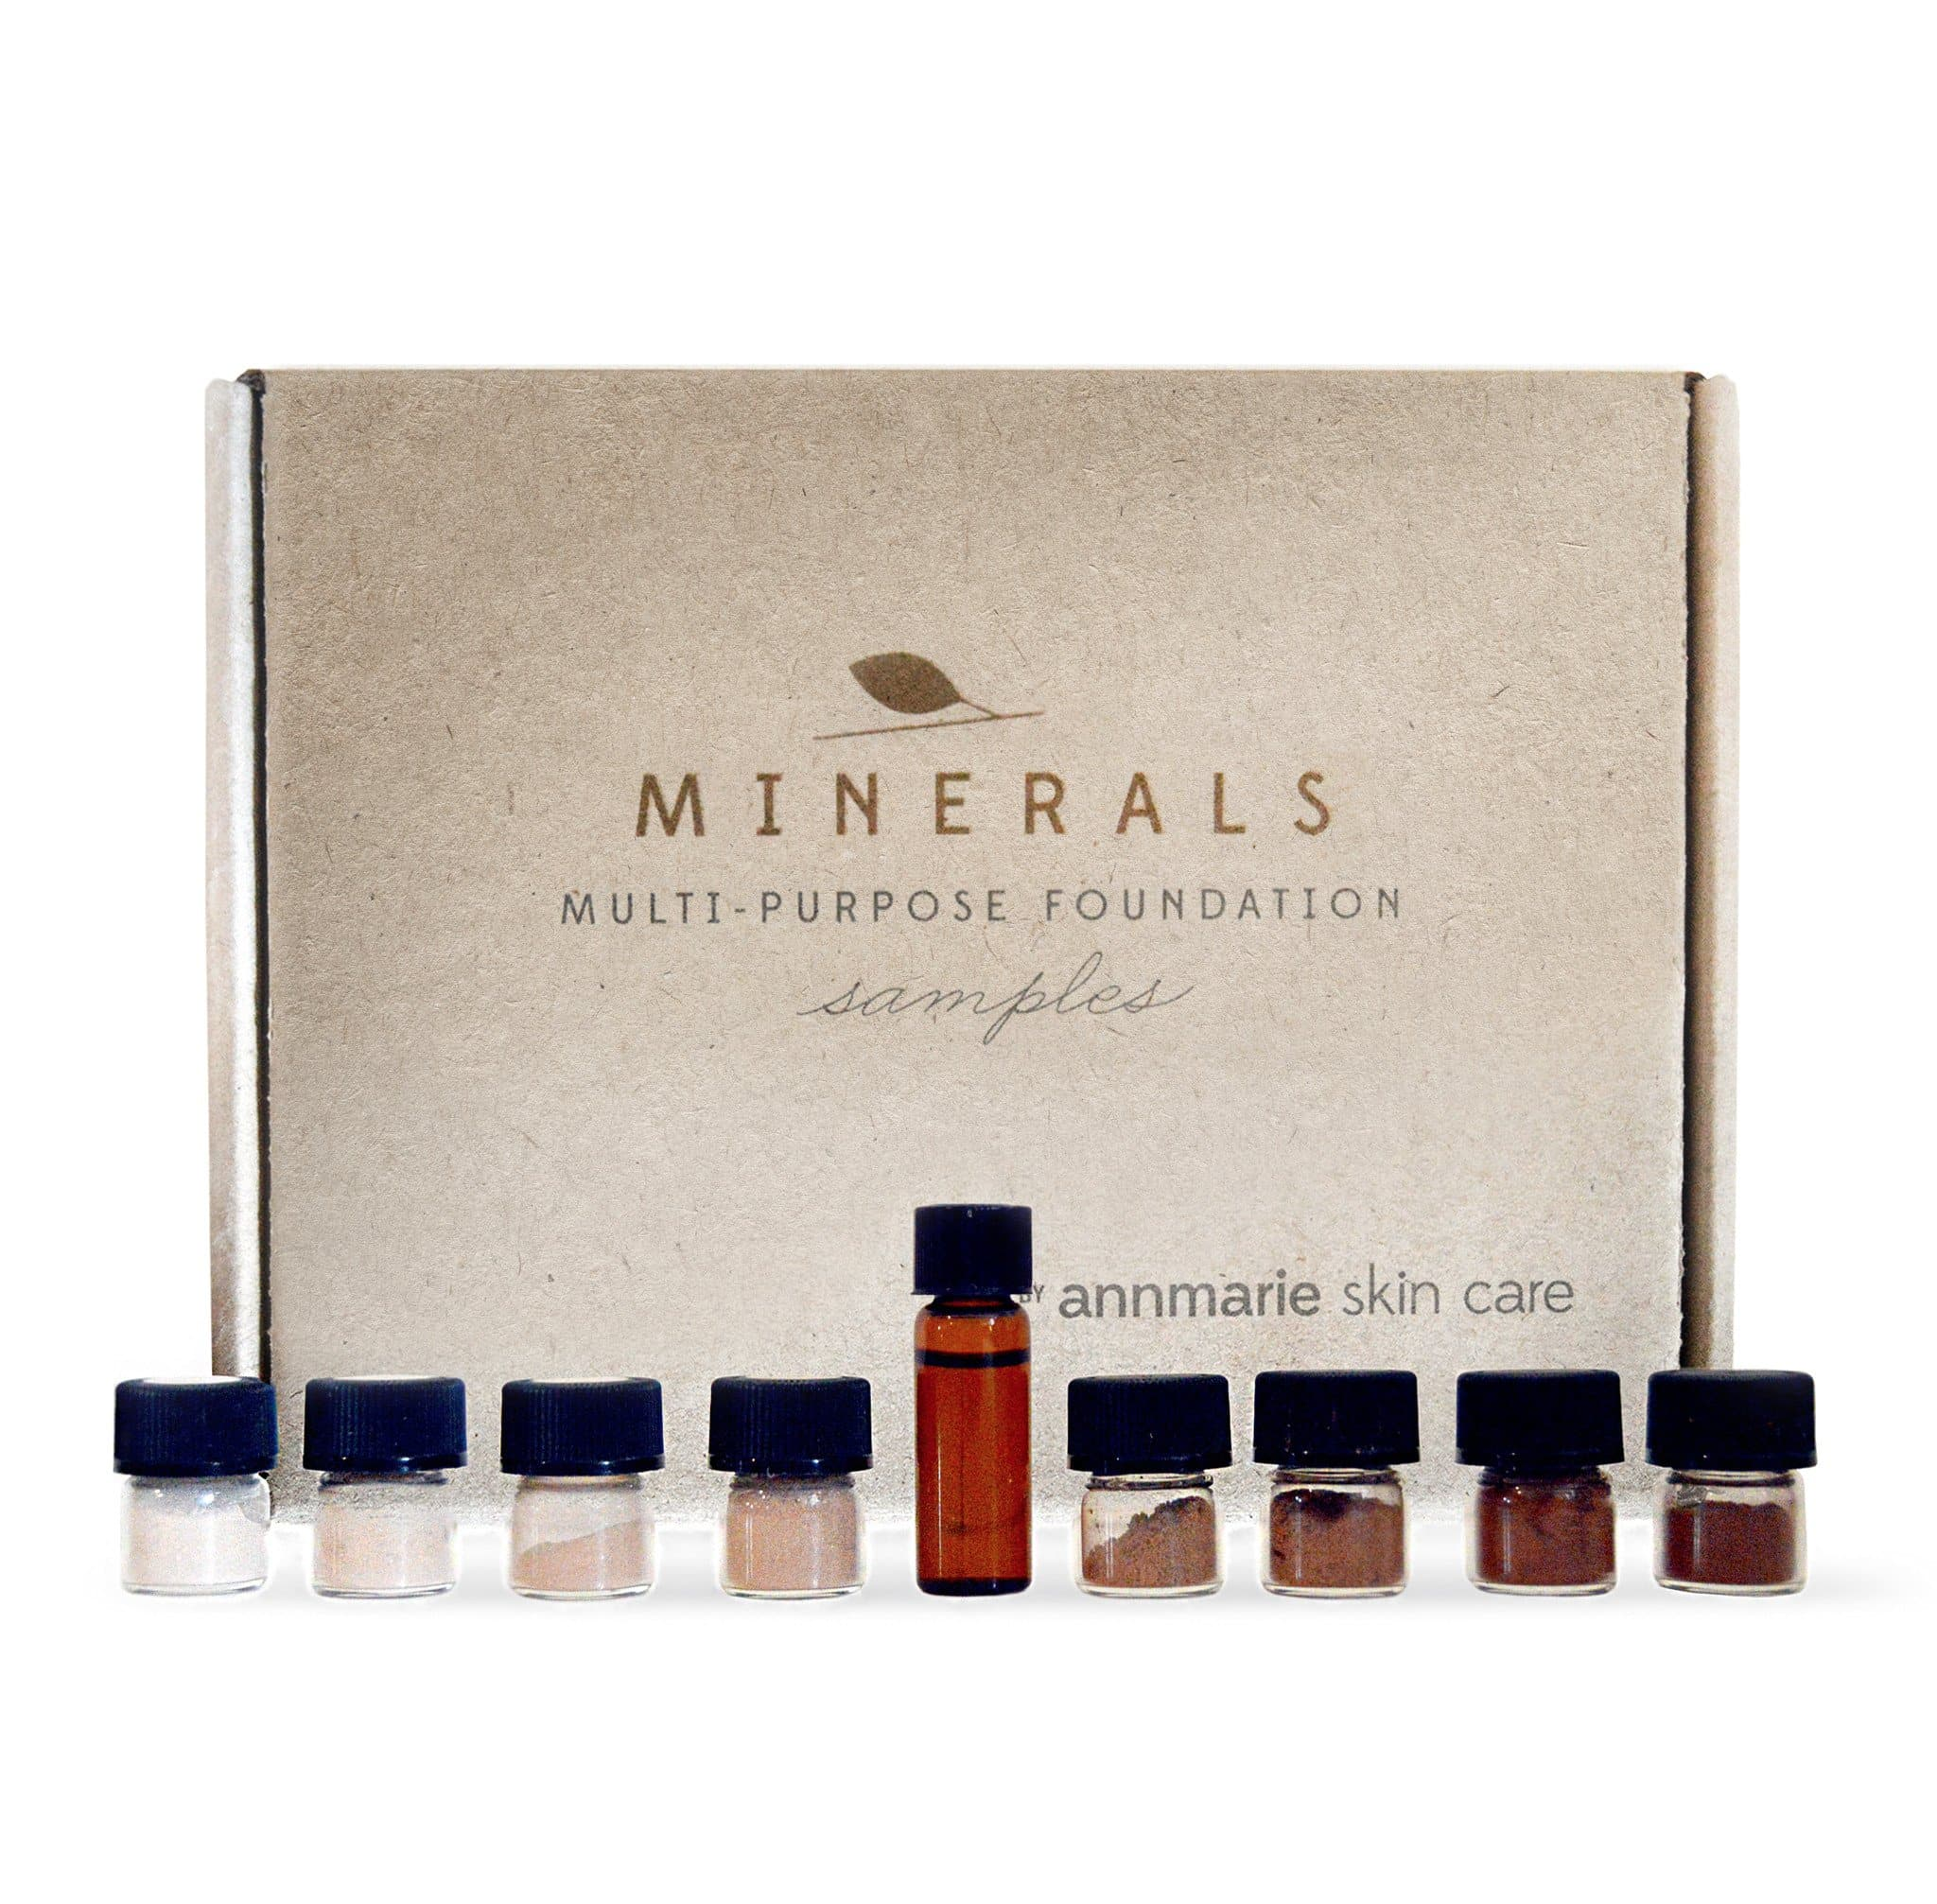 Minerals Multi-Purpose Foundation- Sample Kit